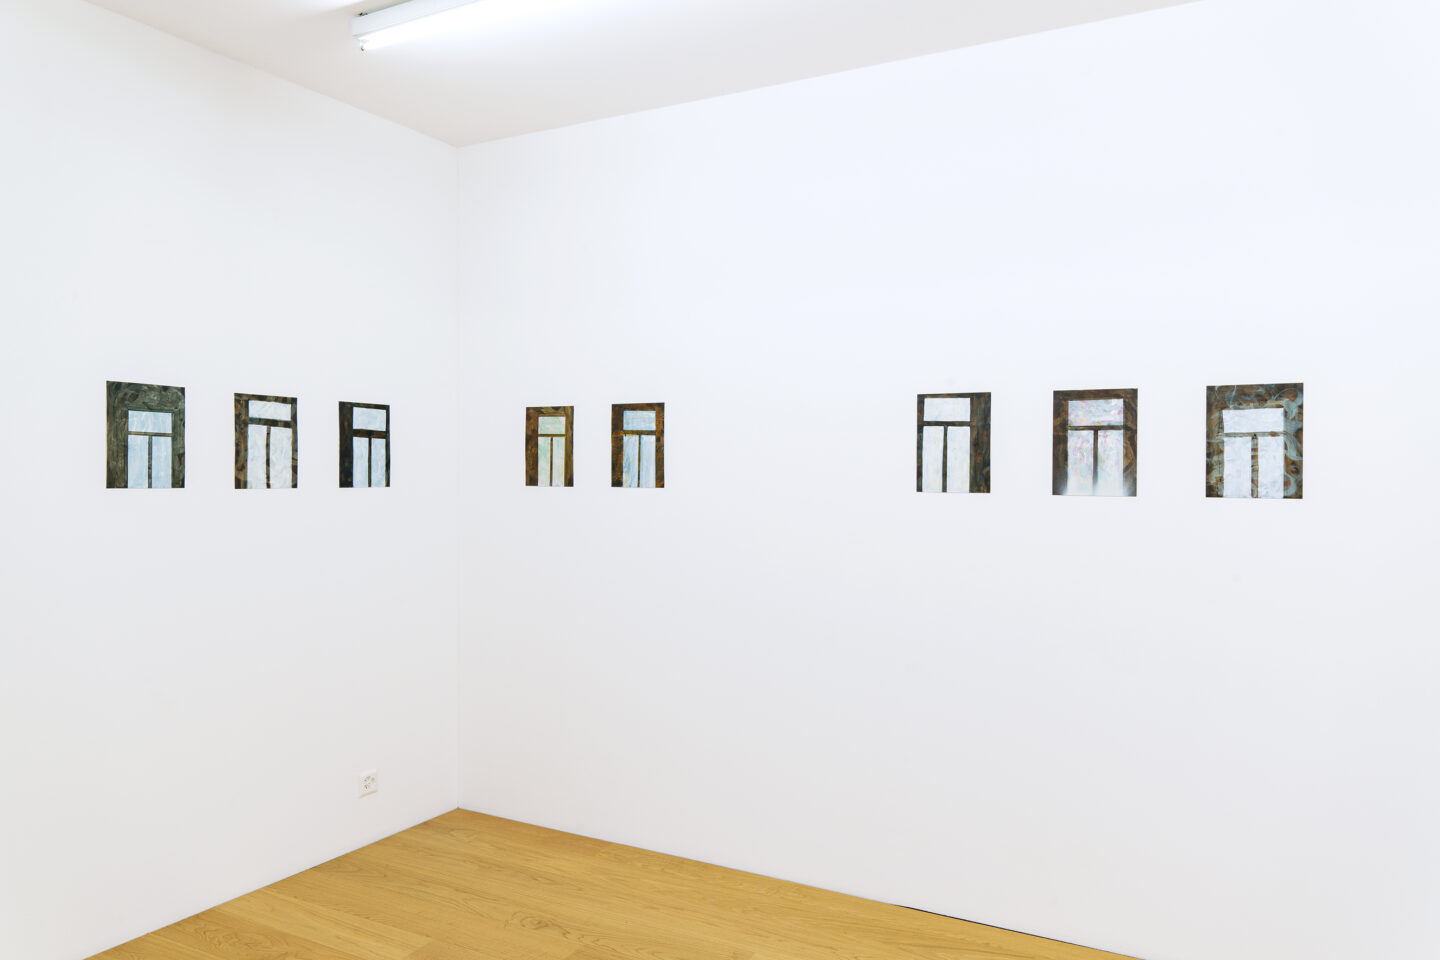 Exhibition View Groupshow «Among Them; view on Jakob Maria Buchner, Ohne Titel, 2019, Acrylic on grounded paper» at Kirchgasse, Steckborn, 2020 / Courtesy: the artists and Kirchgasse